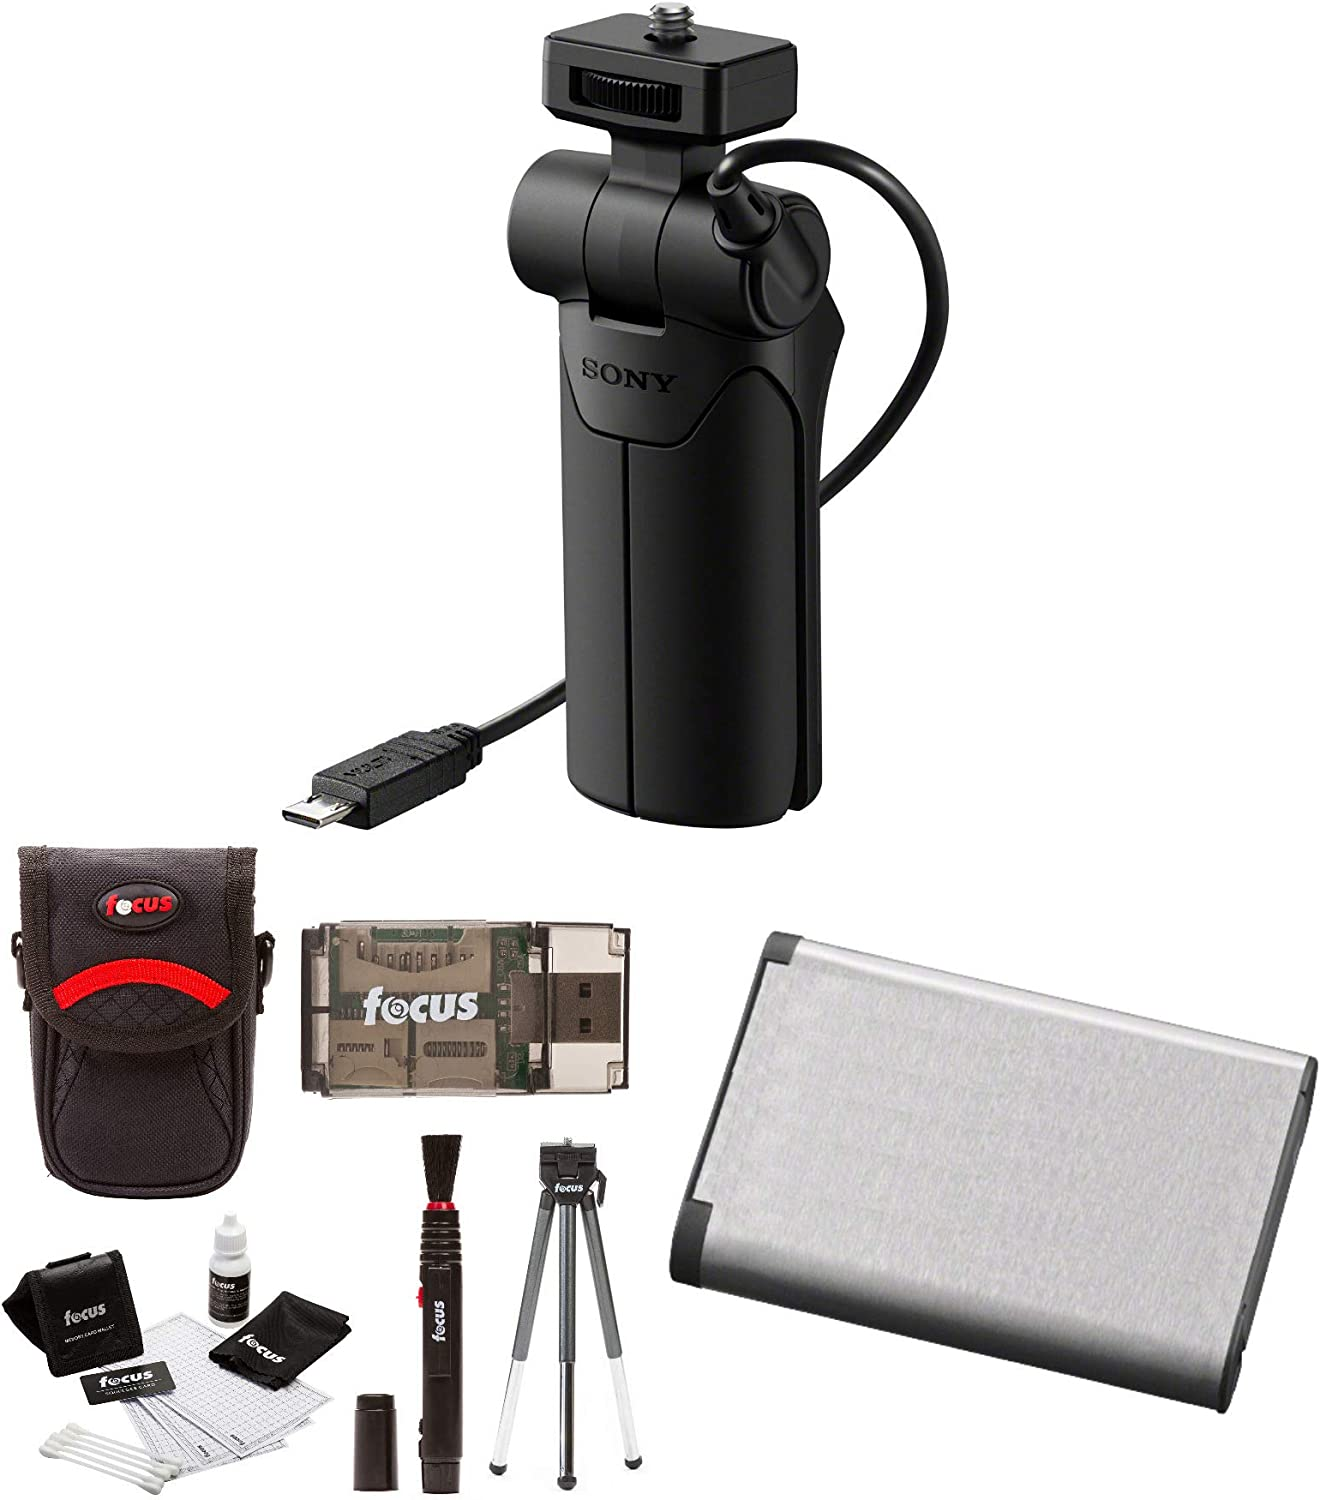 3 Items Sony VCT-SGR1 Shooting Grip and Tripod for Compact Cameras with Spare Battery Pack and Charger Set and Accessory Bundle